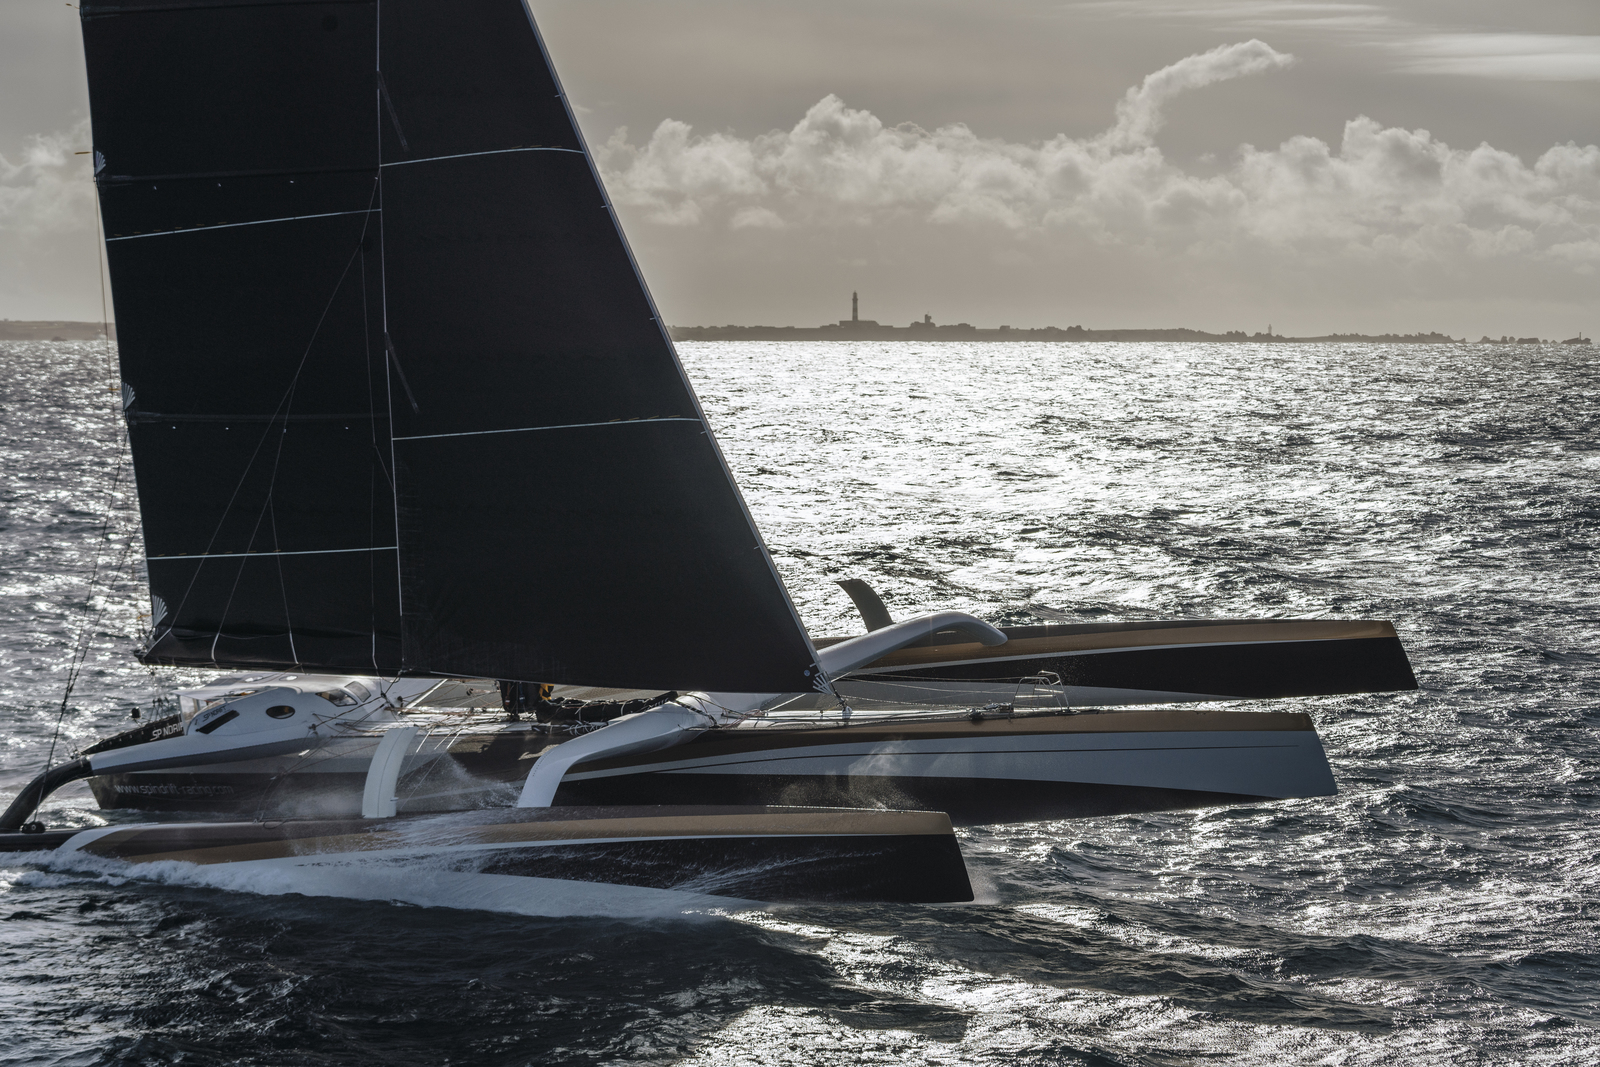 OUESSANT, FRANCE, JANUARY 16th 2019: Spindrift racing at the start of the Jules Verne Trophy.